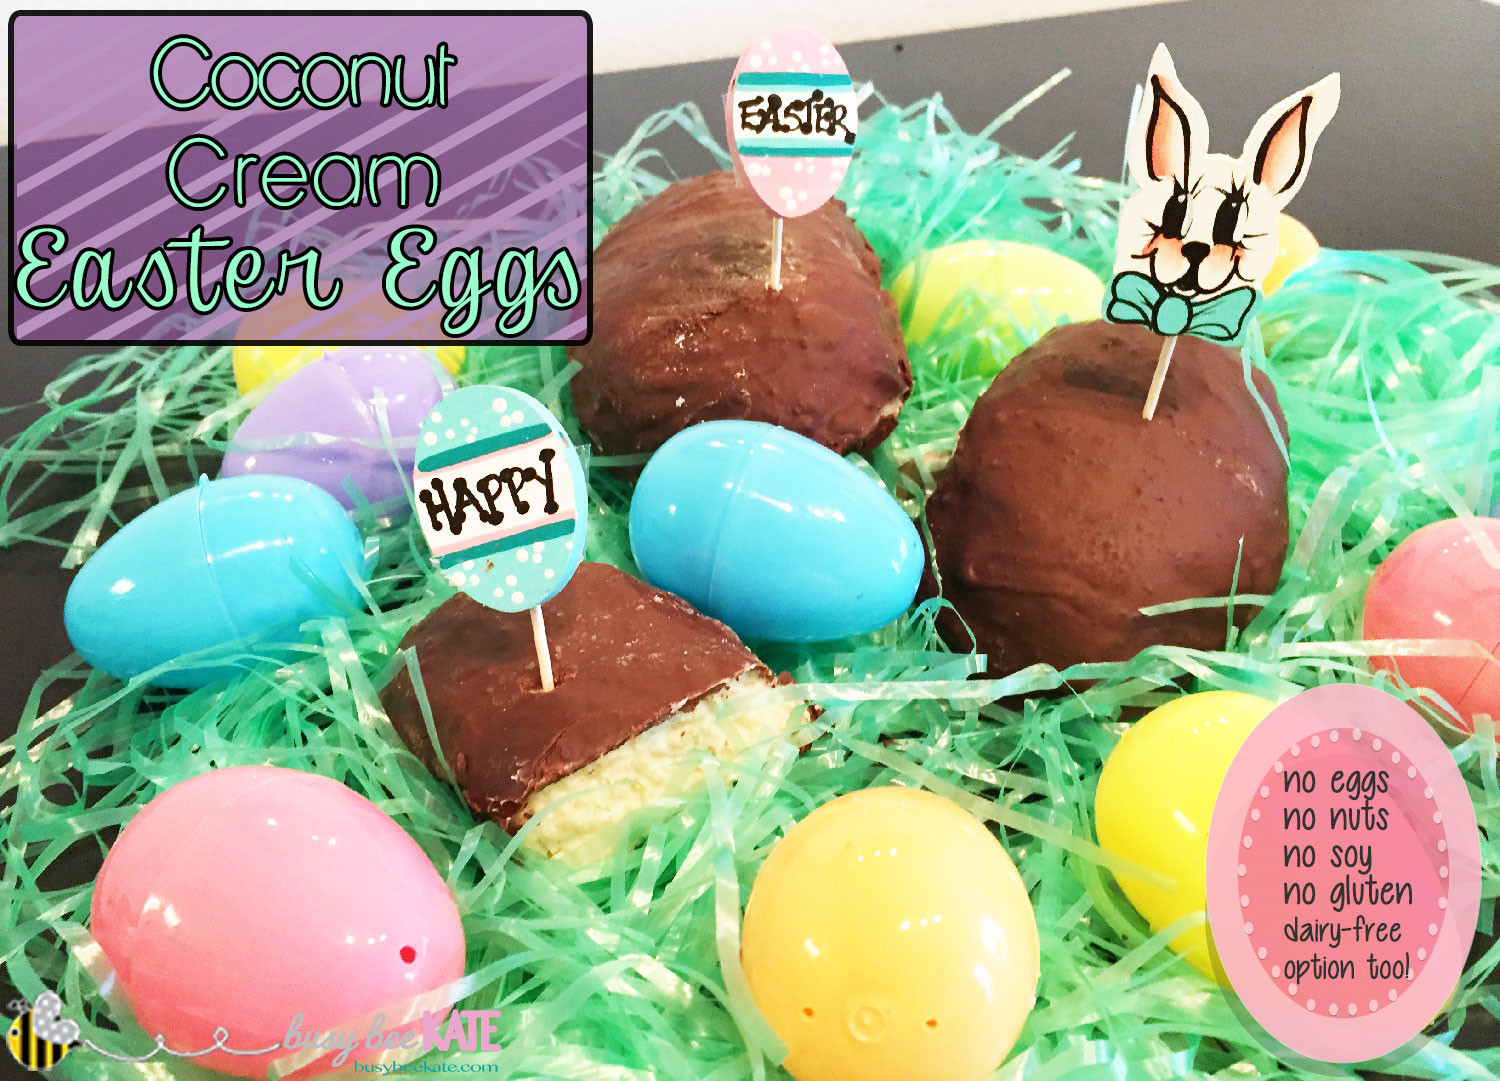 Coconut Cream Easter Eggs Recipes  Coconut Cream Easter Eggs Allergy Friendly – Busy Bee Kate